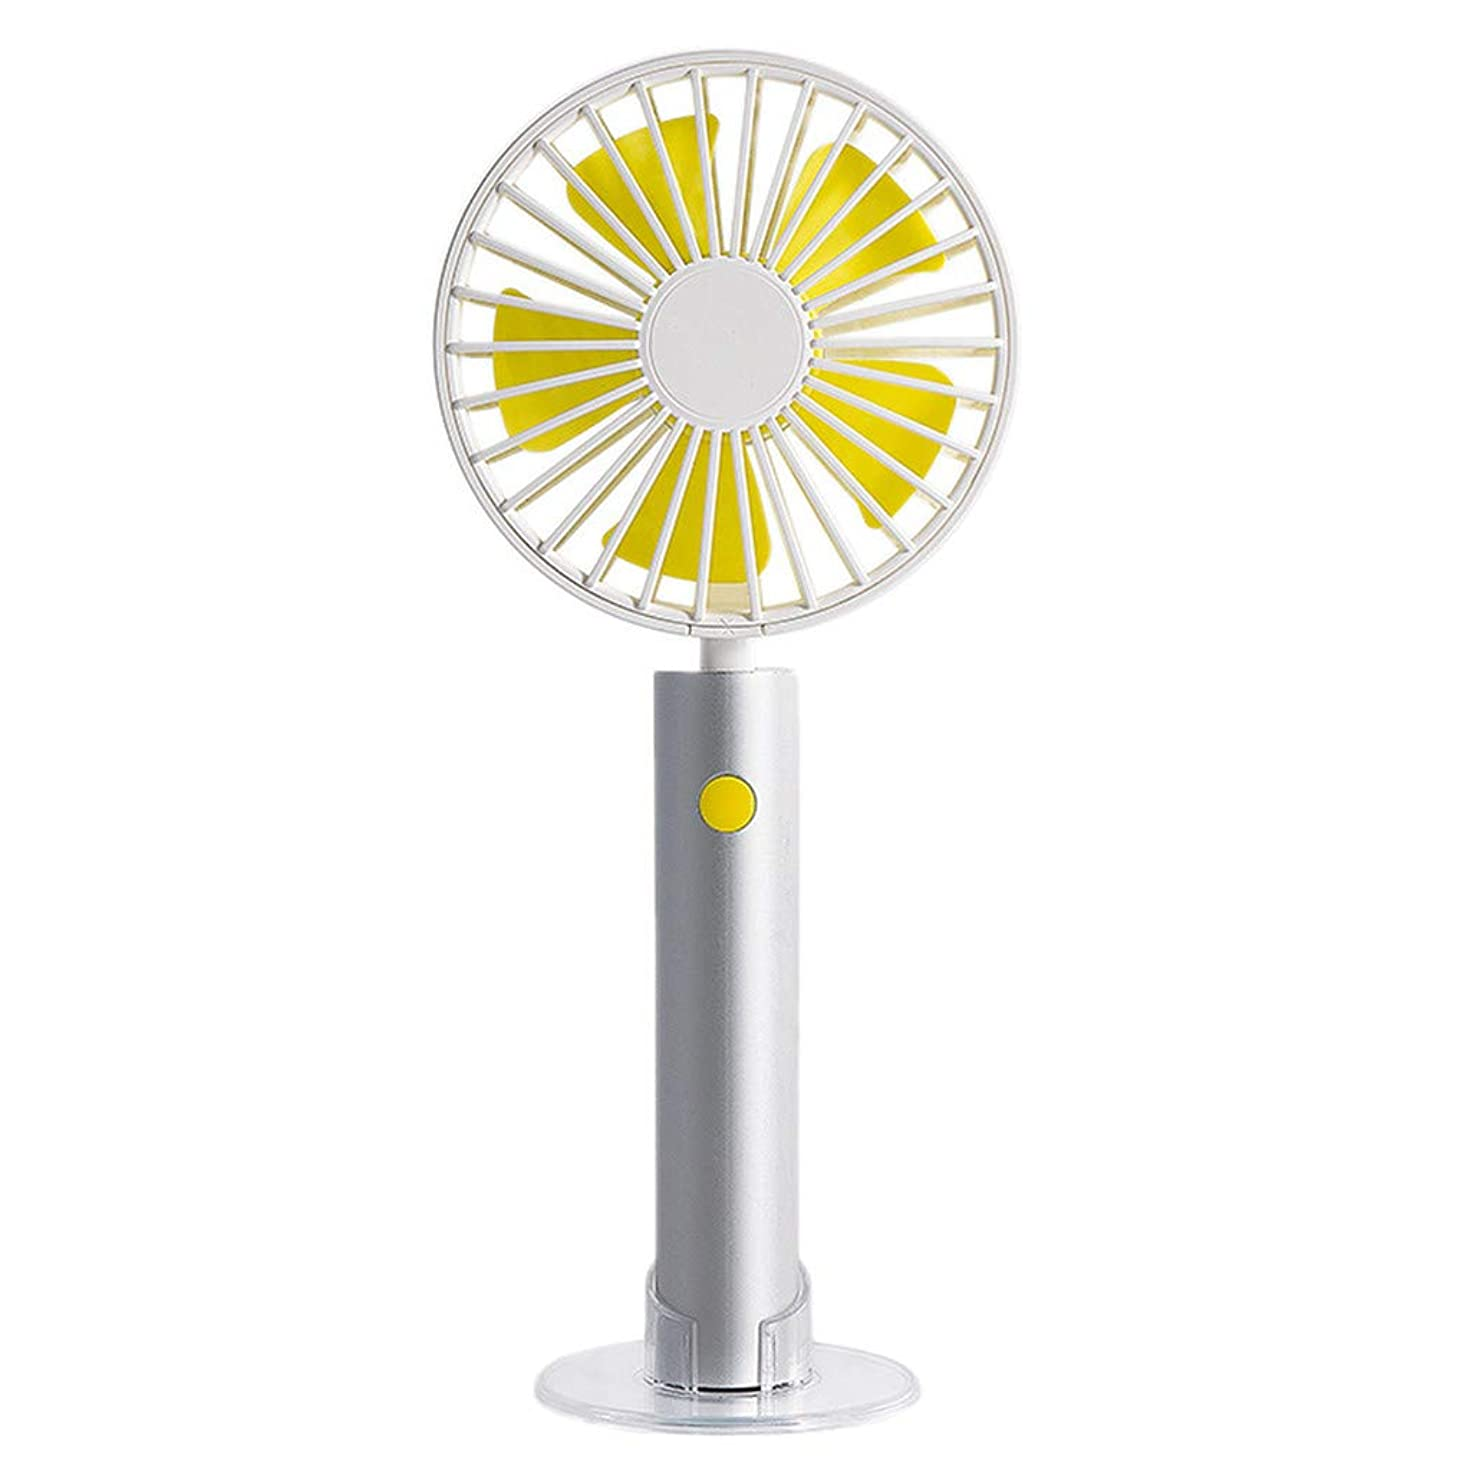 OrchidAmor New Portable Handheld Fan Mini Size USB Rechargeable Hand Hold Fan Standable Fans 2019 New Fashion